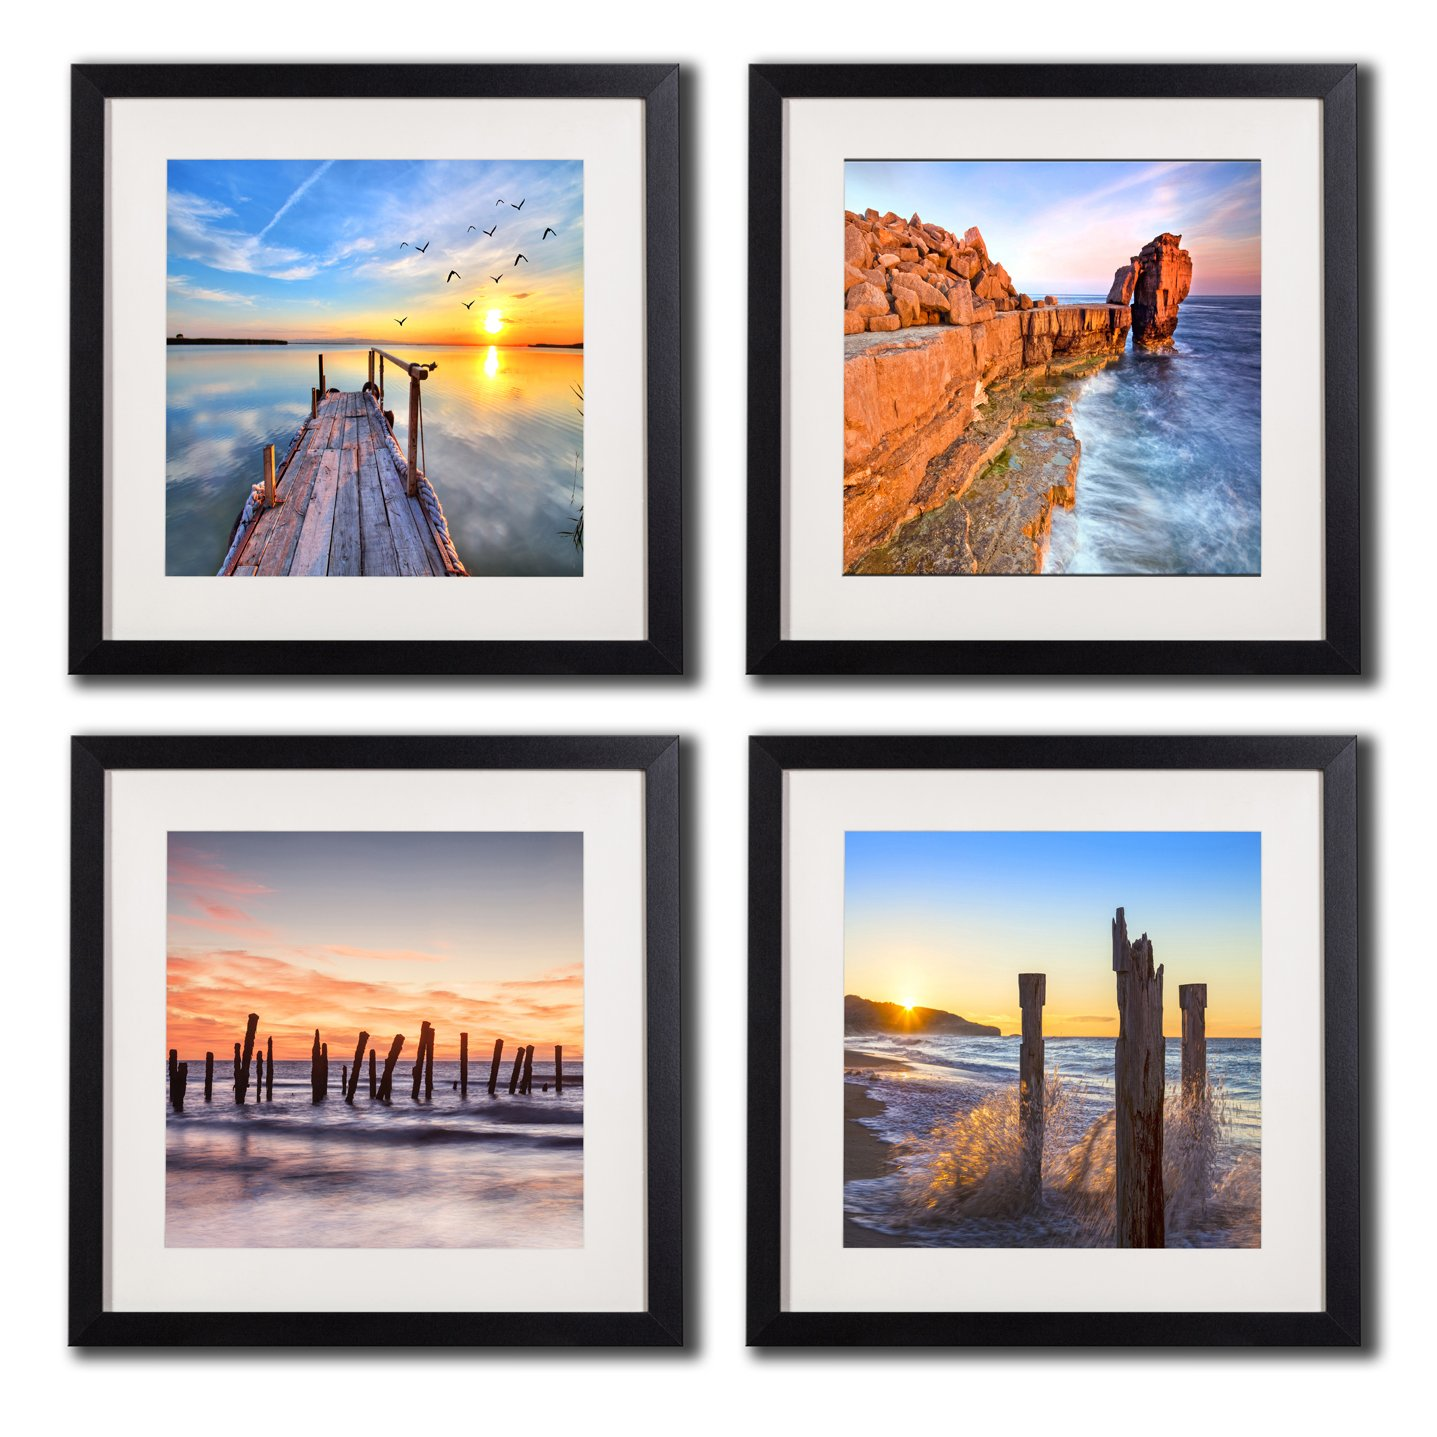 Seascape Canvas Prints Wall Art Photos Printed On Canvas Sunrise Paintings Beach Sunset Decor Seaview Artwork Poster Sea Pictures 4 Piece Black Frame White Matte Colorful Wall Decor Home Decorations